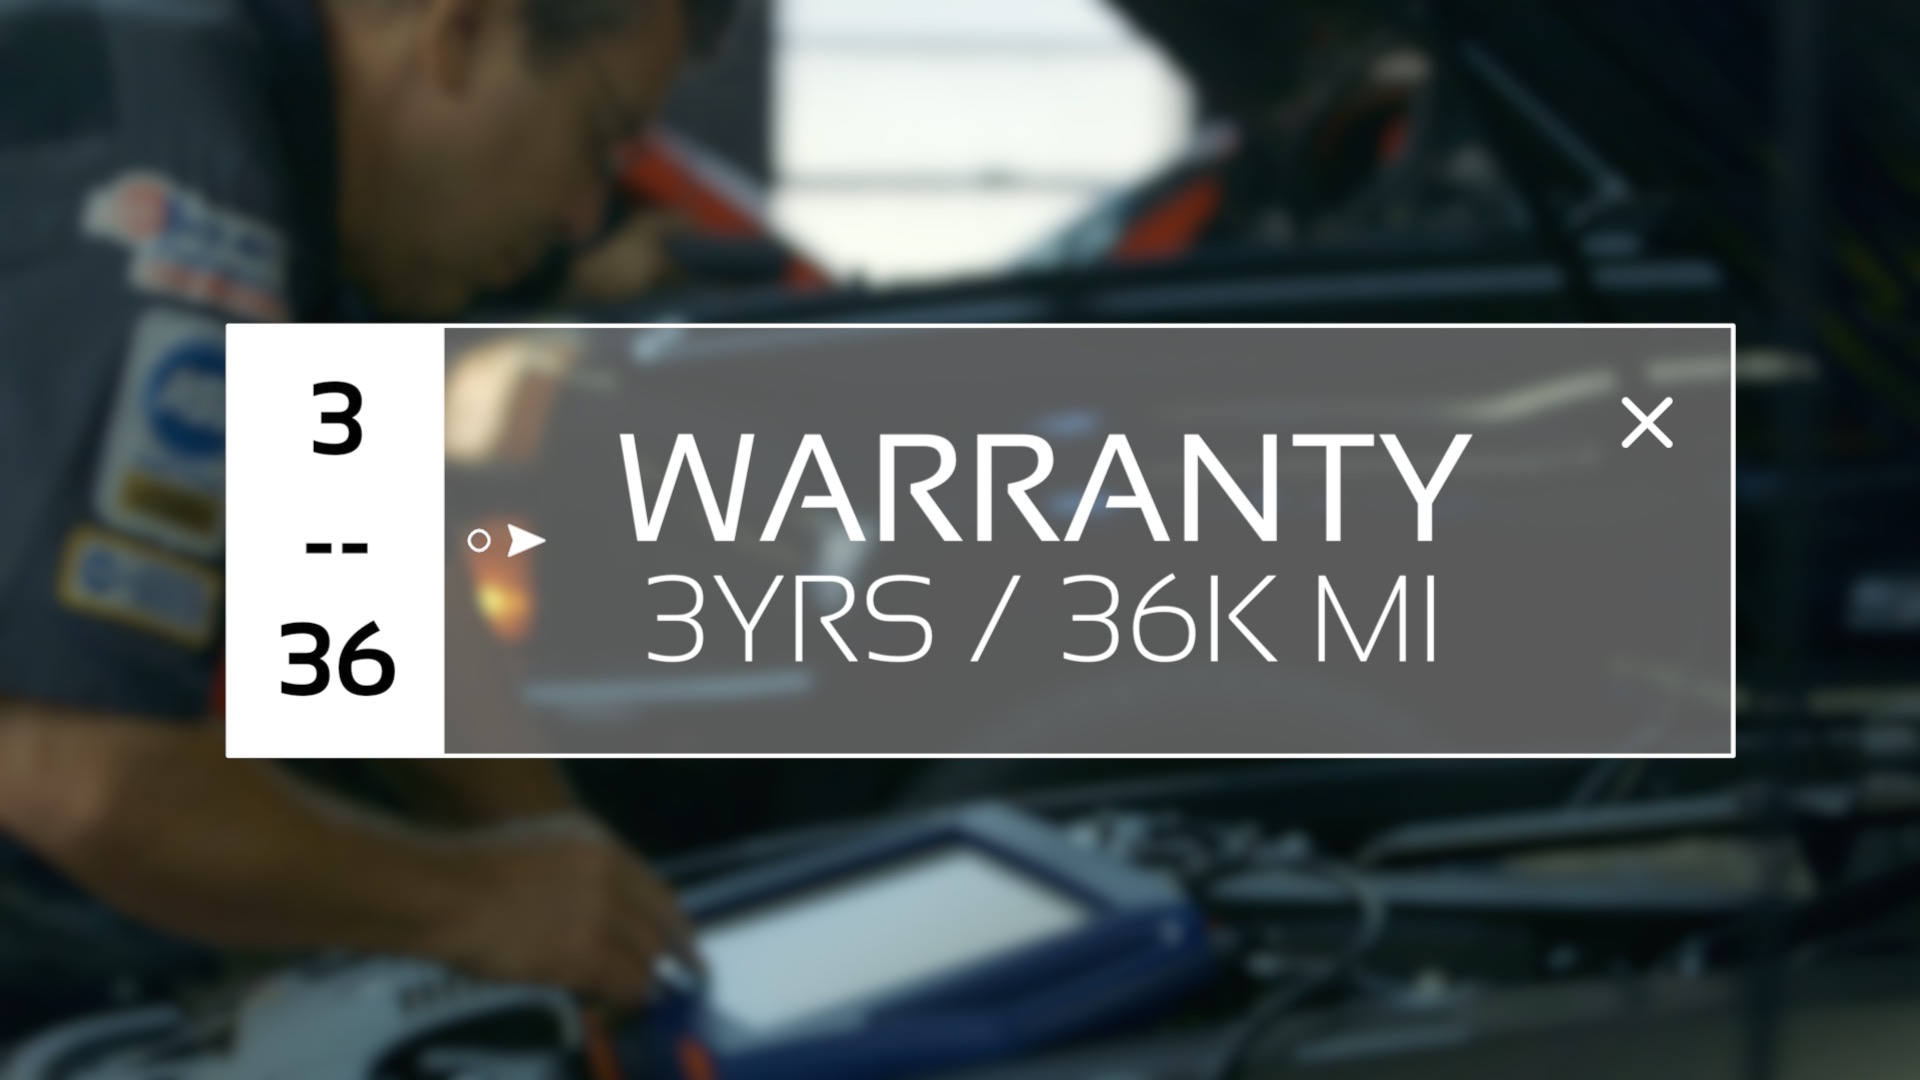 3 year 36,000 mile warranty on parts and labor